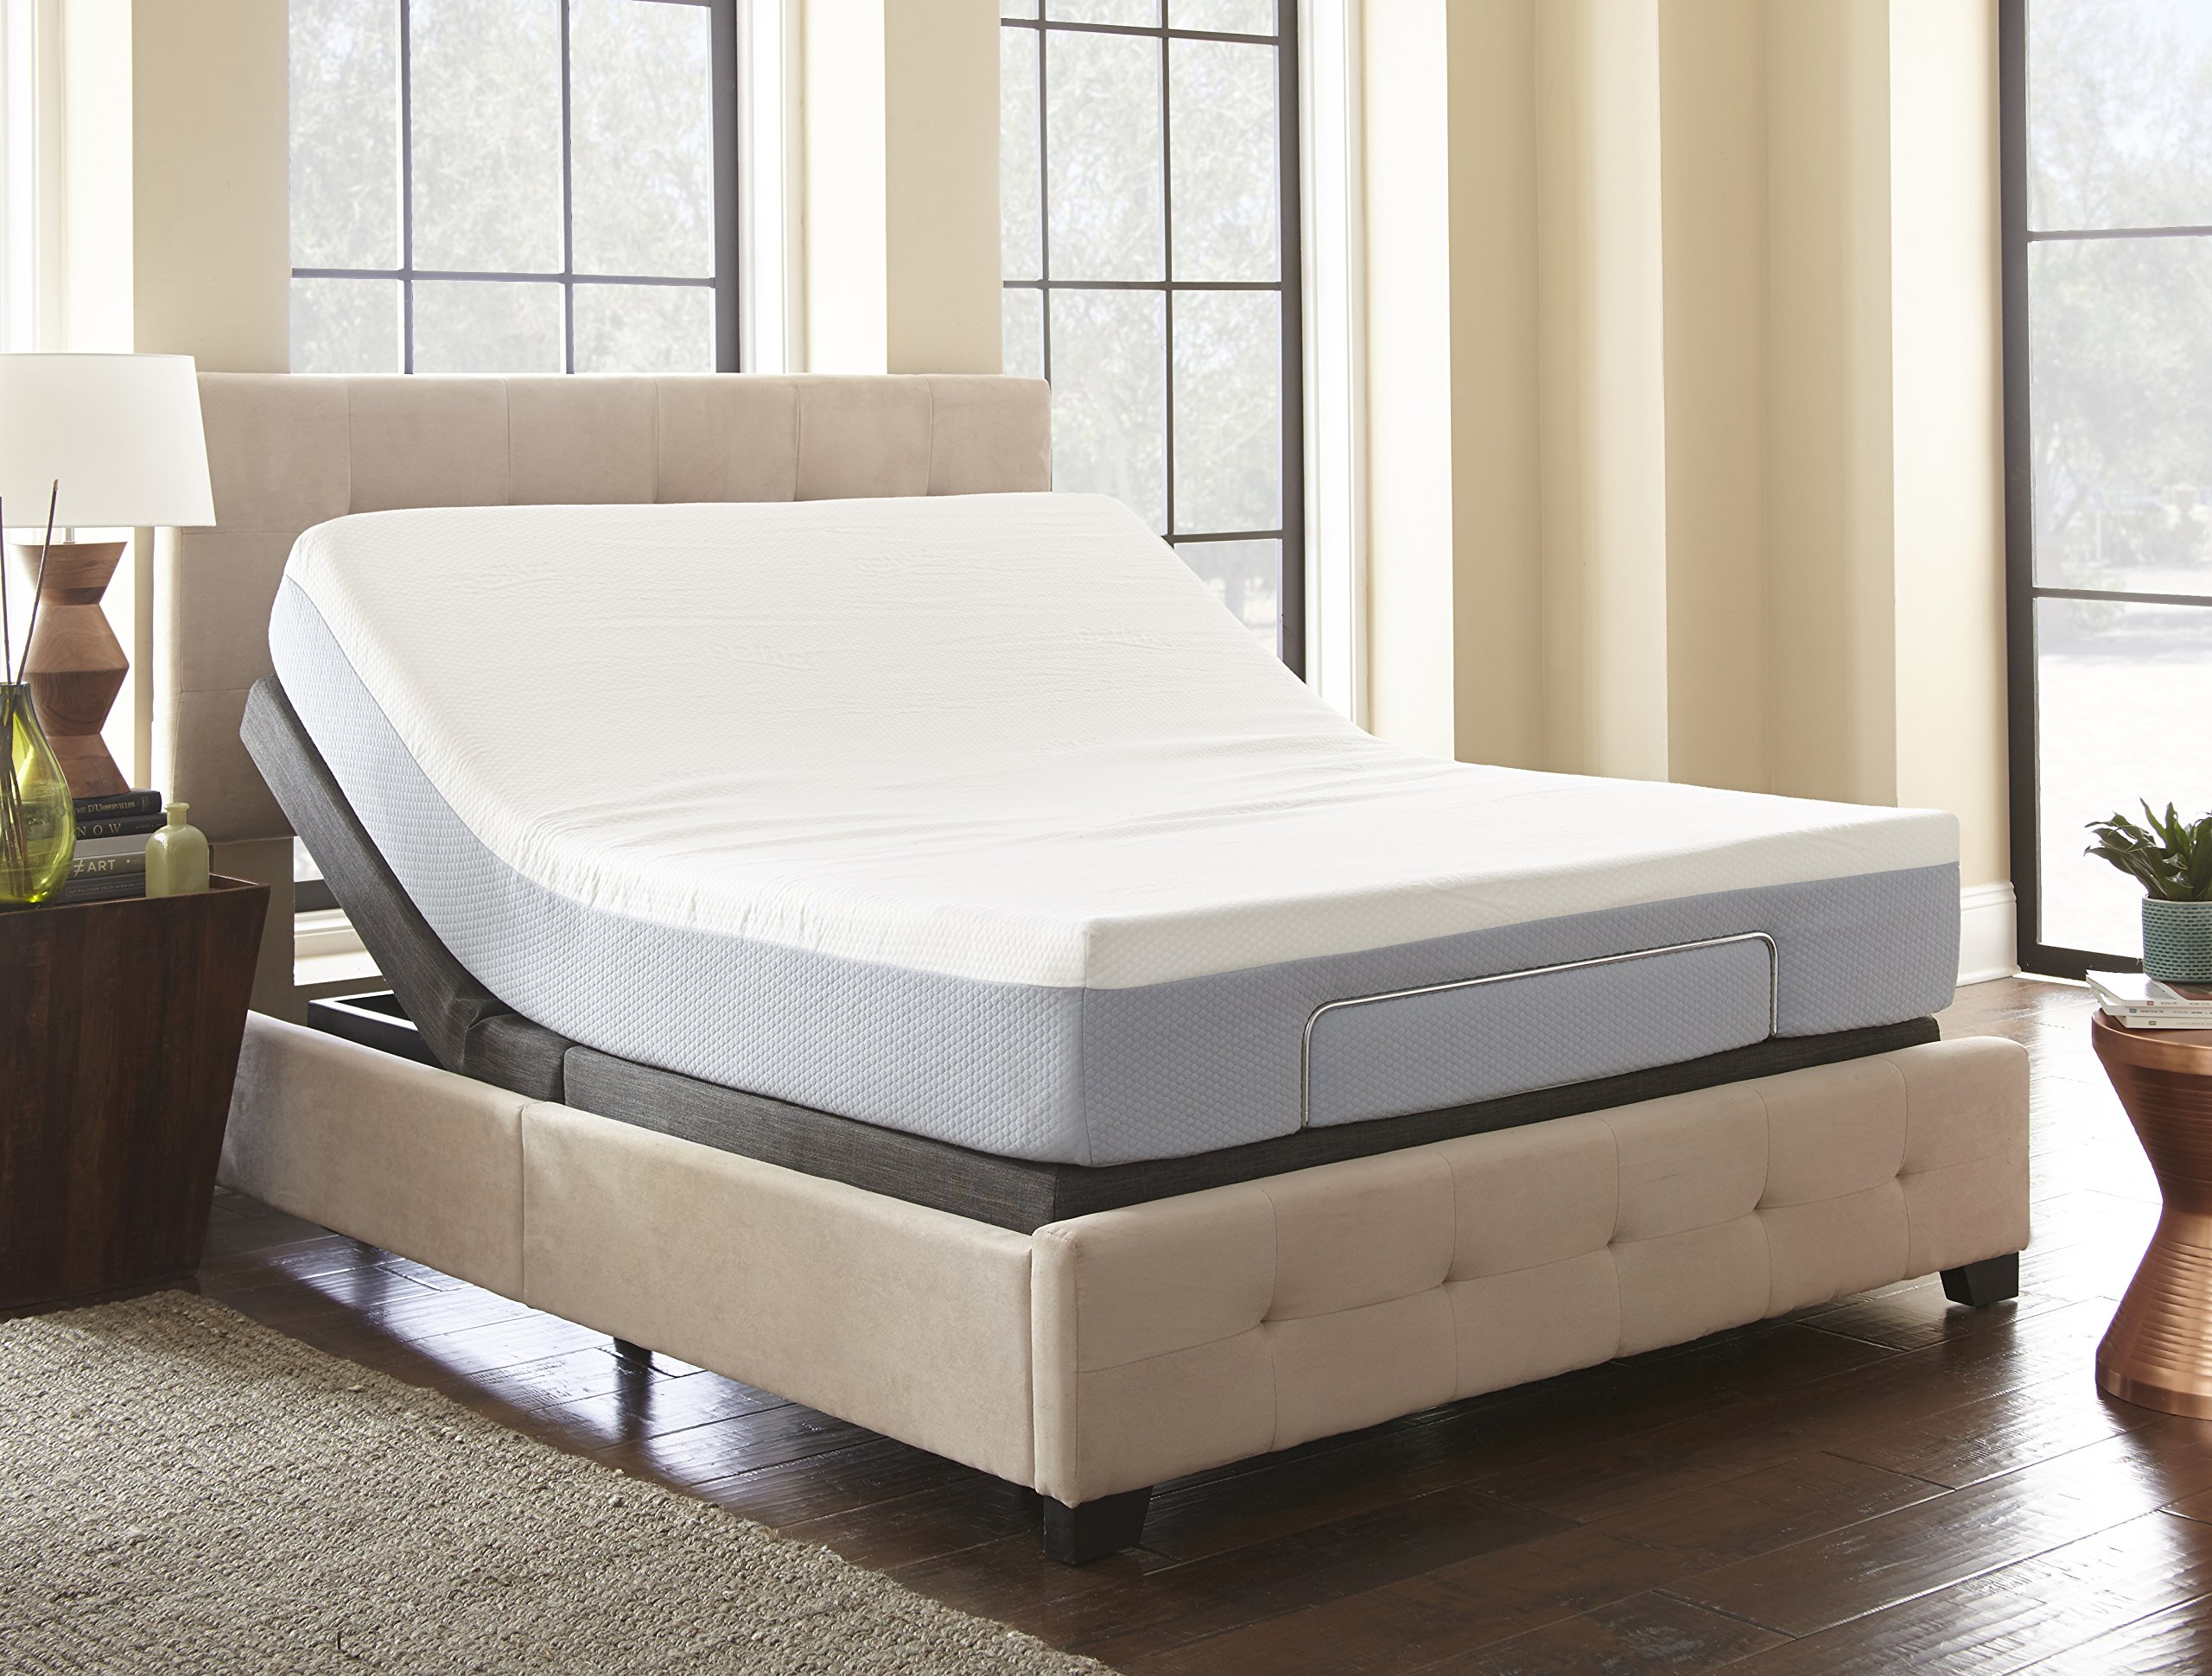 Boyd Sleep Lifestyle Adjustable Bed Frame/Mattress Foundation with Tethered Remote, Twin XL by Boyd Sleep